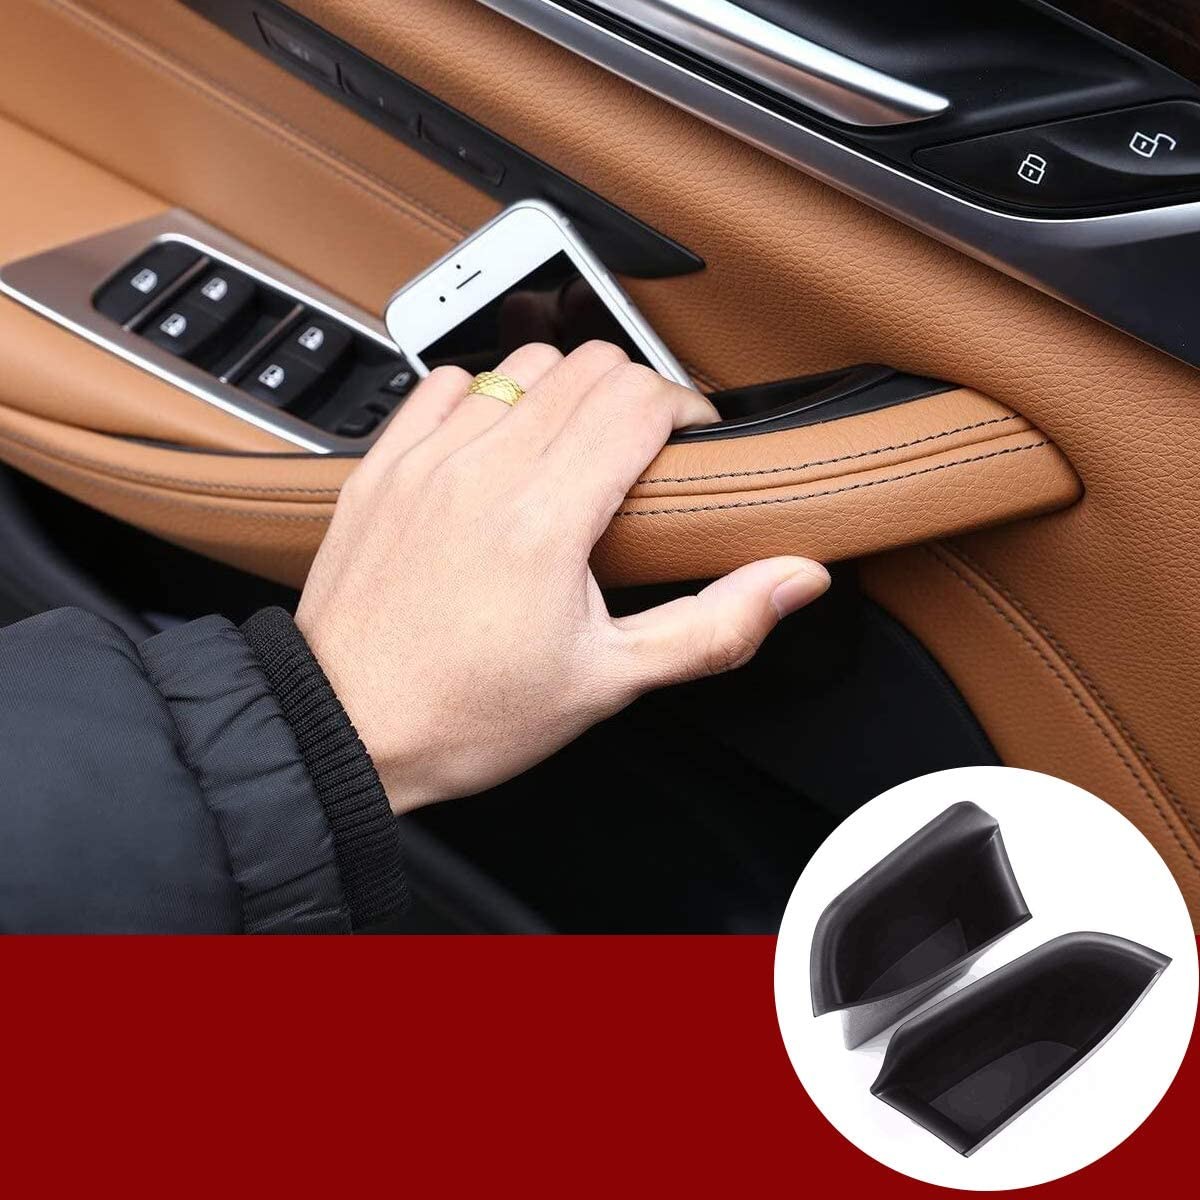 YIWANG ABS Blcak Car Door Storage Box Phone Tray Accessories for BMW 5 Series G30 2018-2020